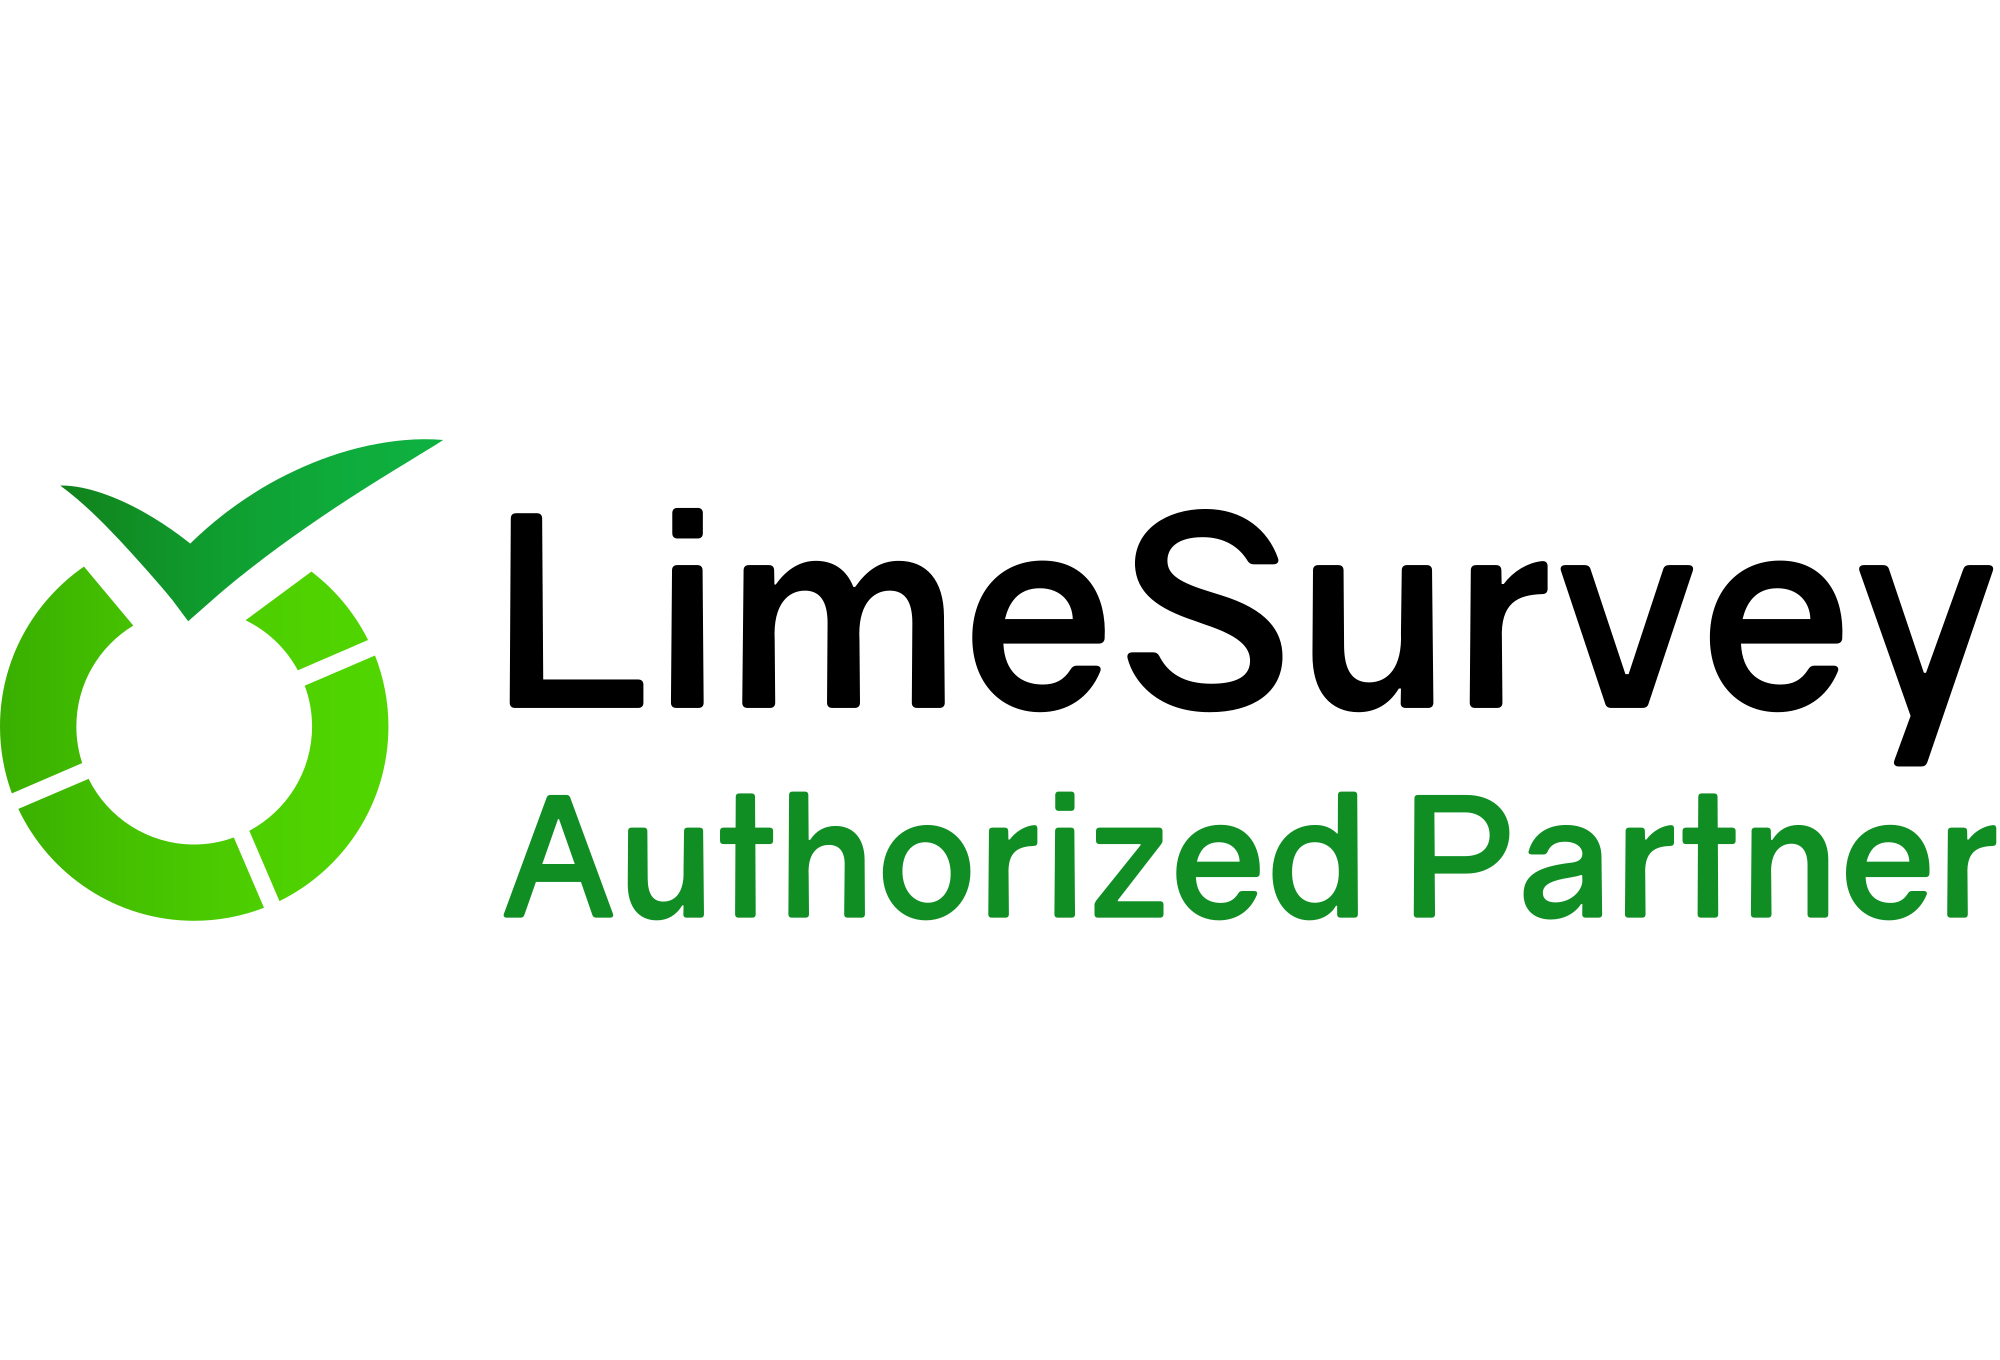 LimeSurvey Authorised Partner Logo